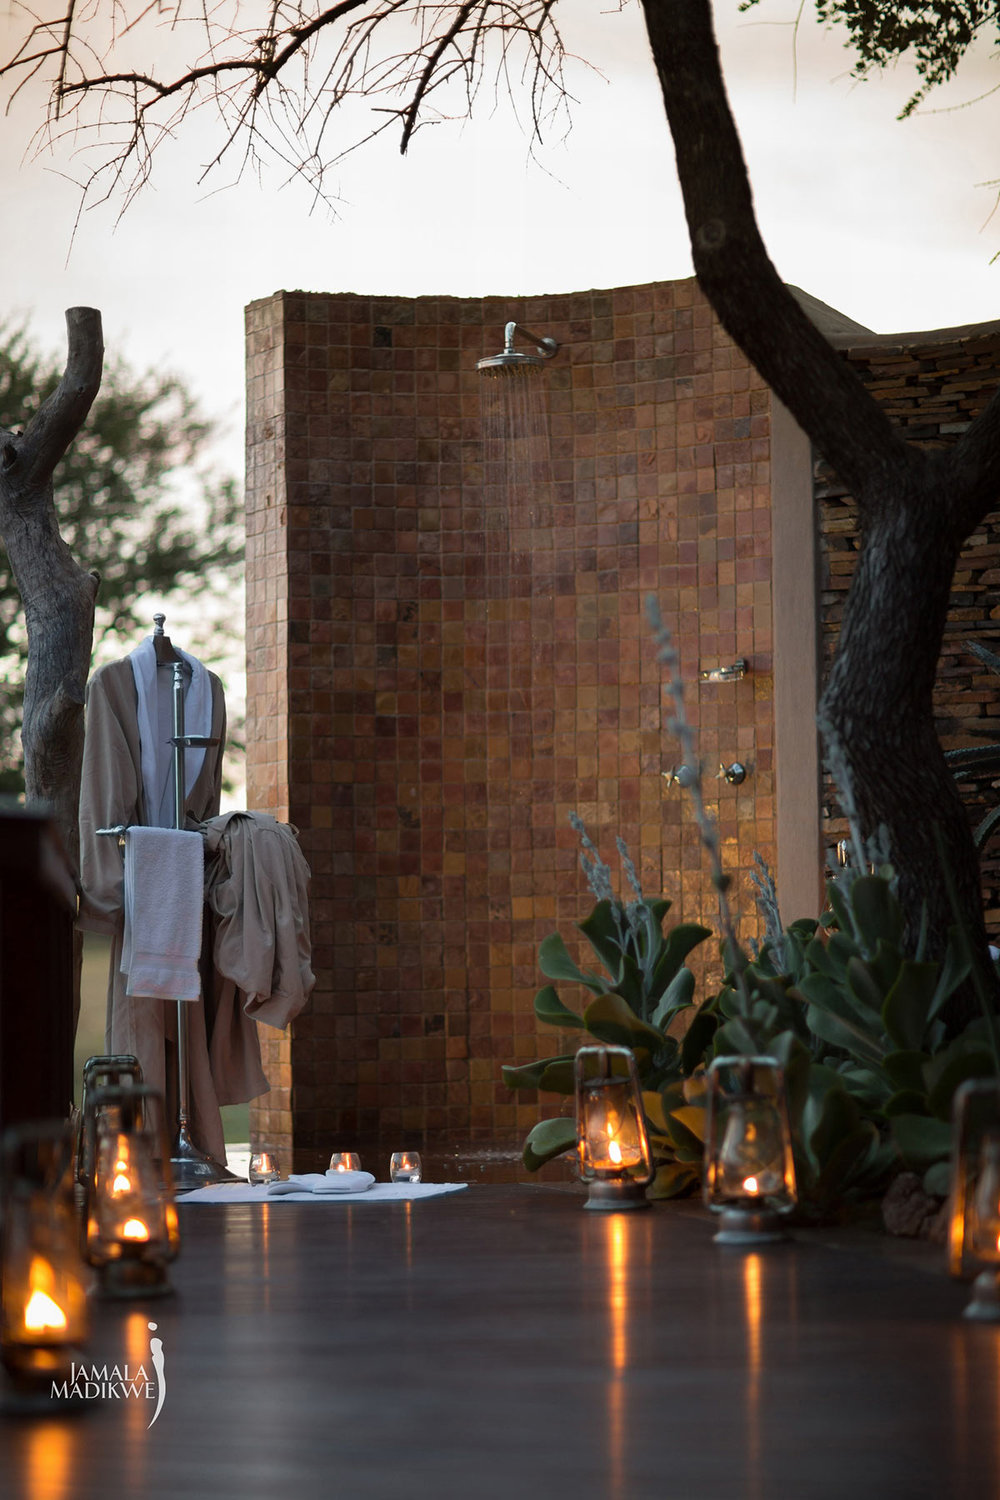 Jamala-Madikwe-Royal-Safari-Lodge_Villa-Outdoor-Shower.jpg